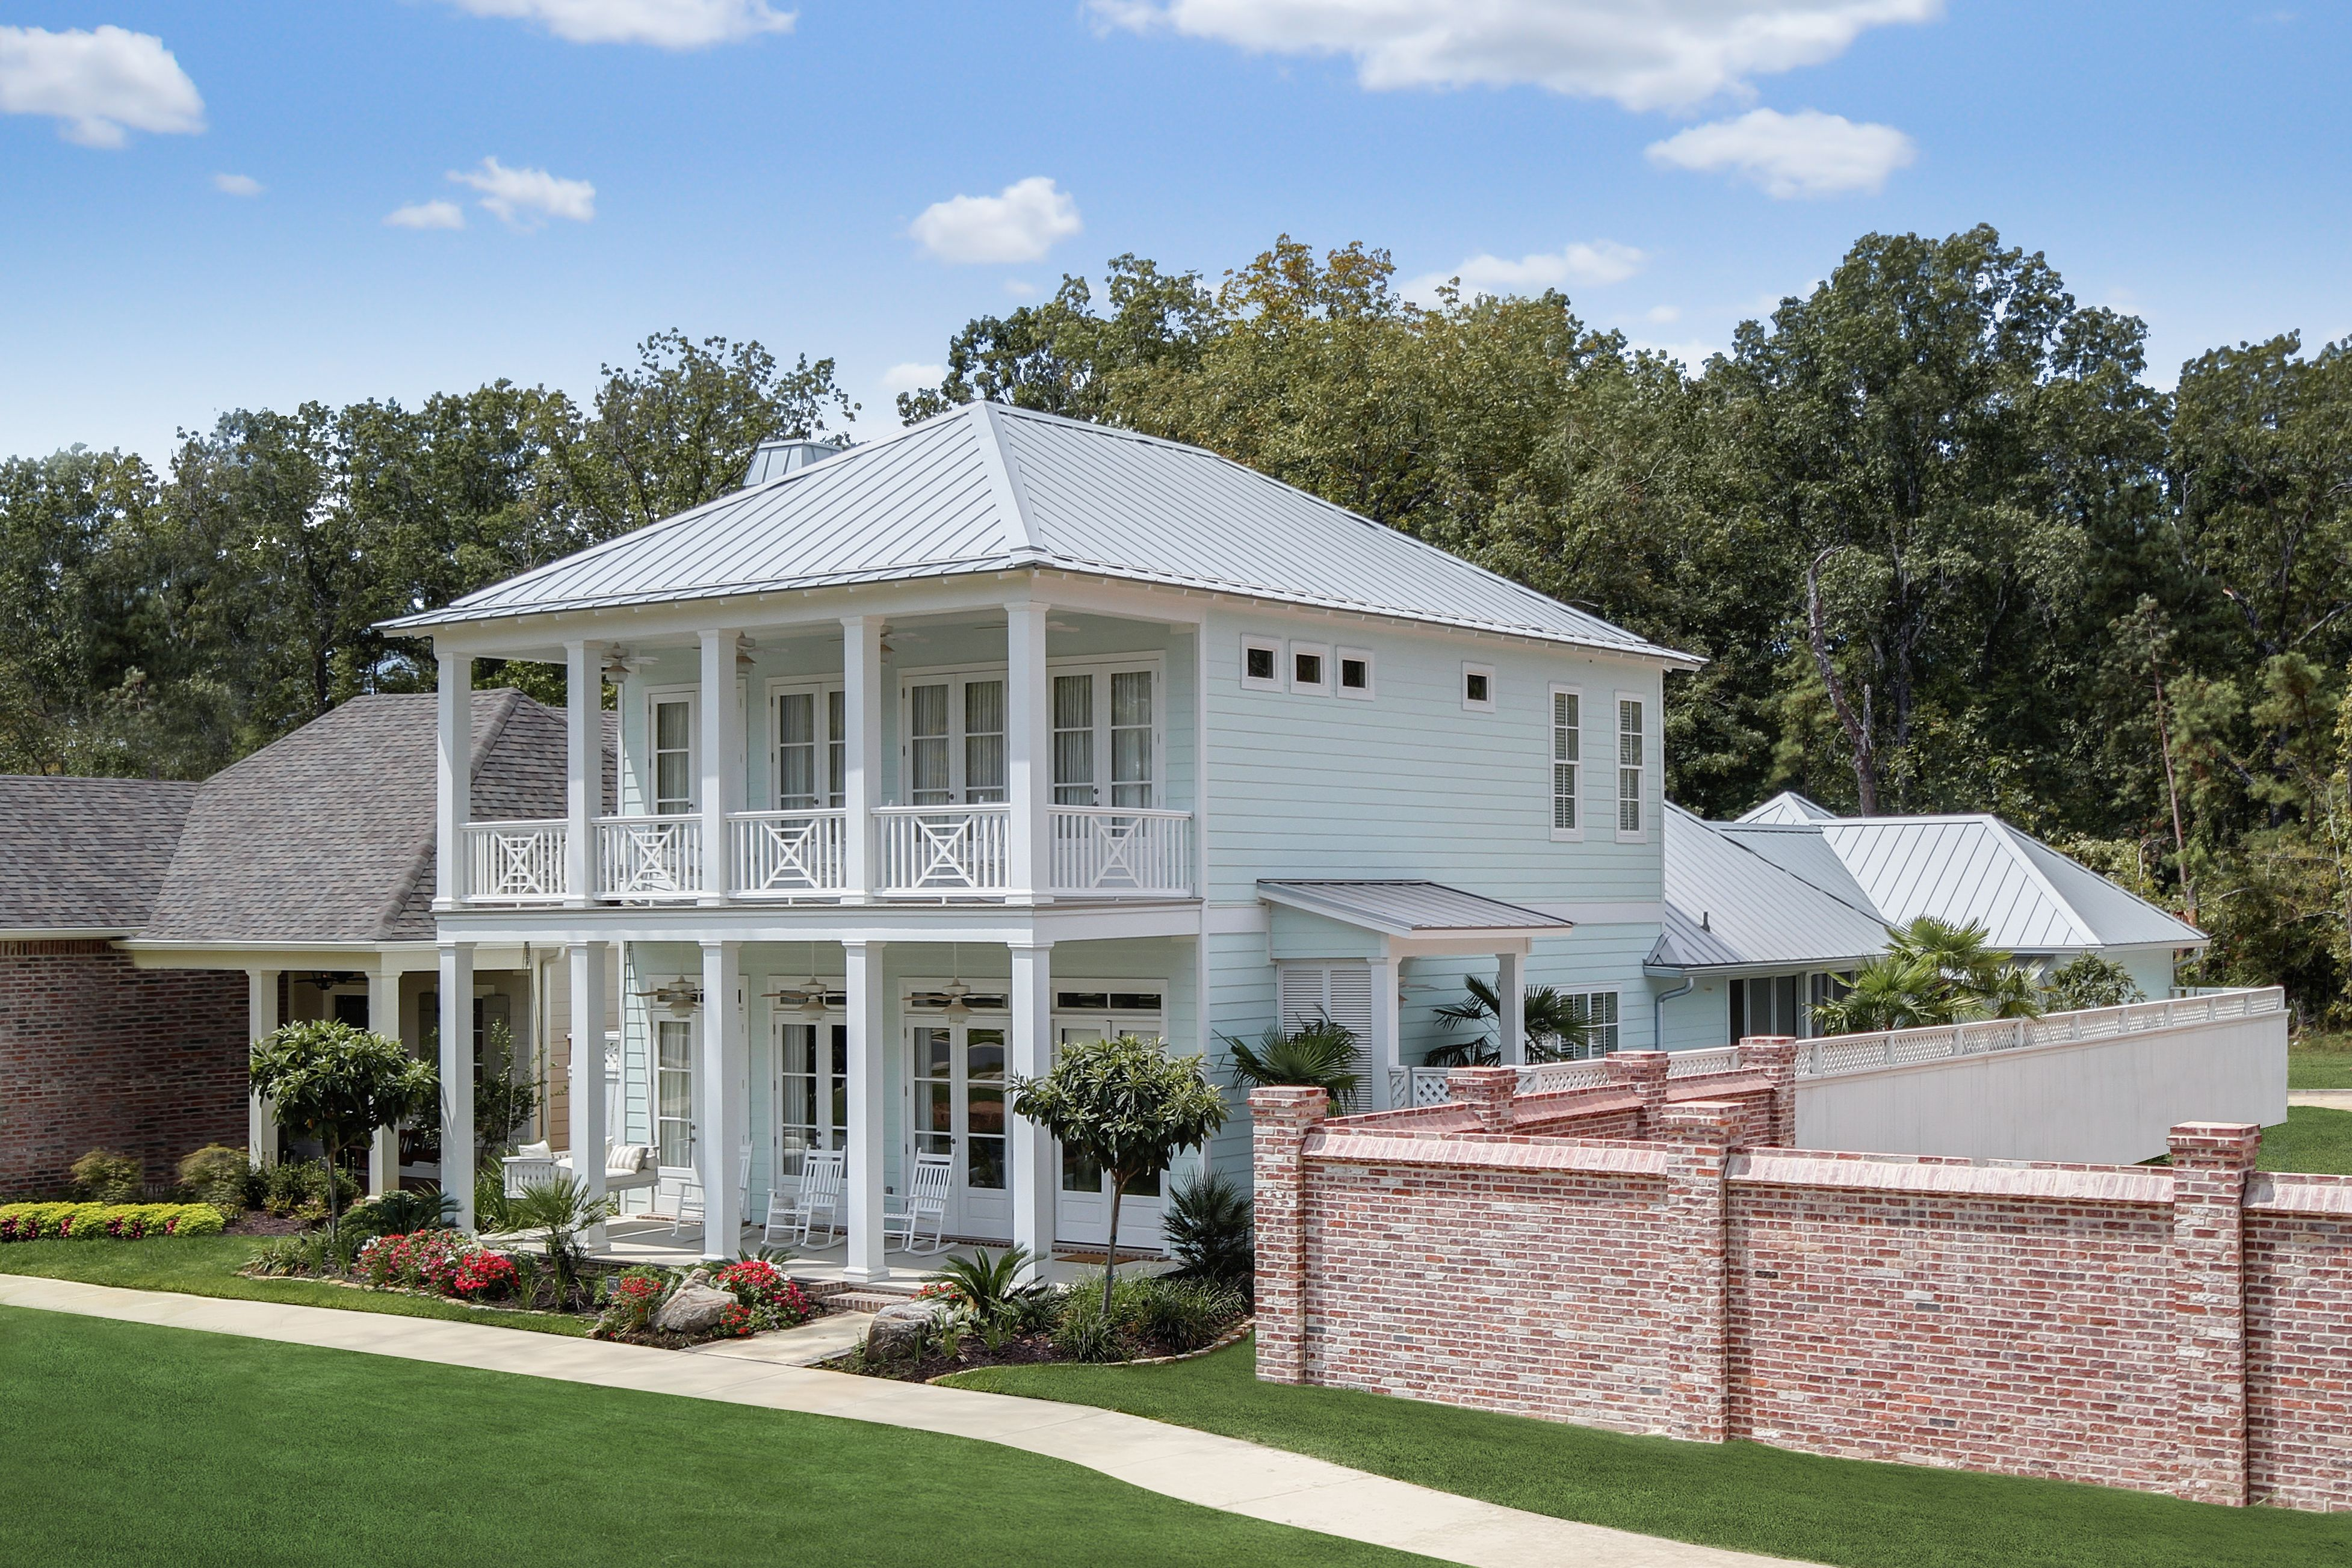 Metal Roof Colors Residential Metal Roofing Systems Brick Exterior House Modern Farmhouse Exterior Modern Farmhouse Plans